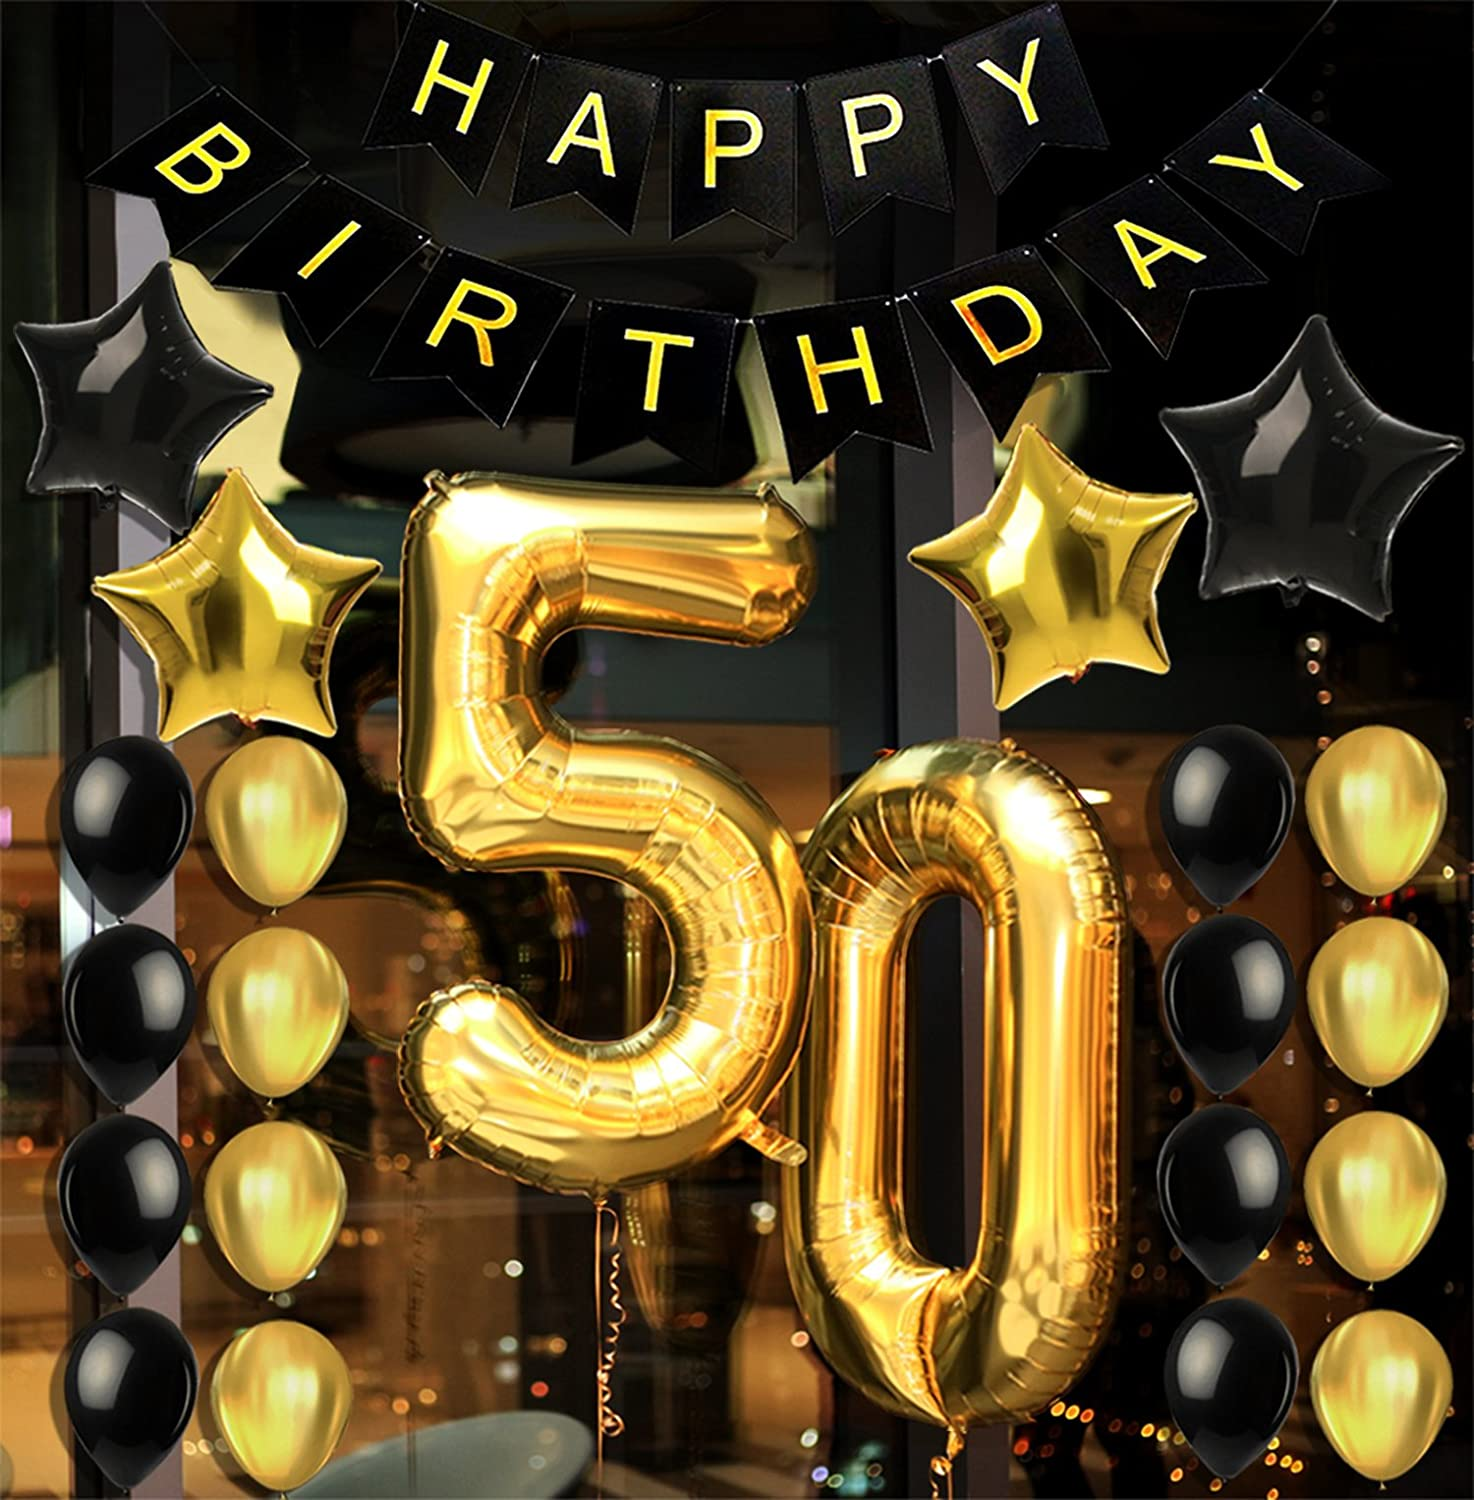 Swell 50Th Birthday Decorations Party Supplies Party Favors Accessories Great For Men Download Free Architecture Designs Embacsunscenecom